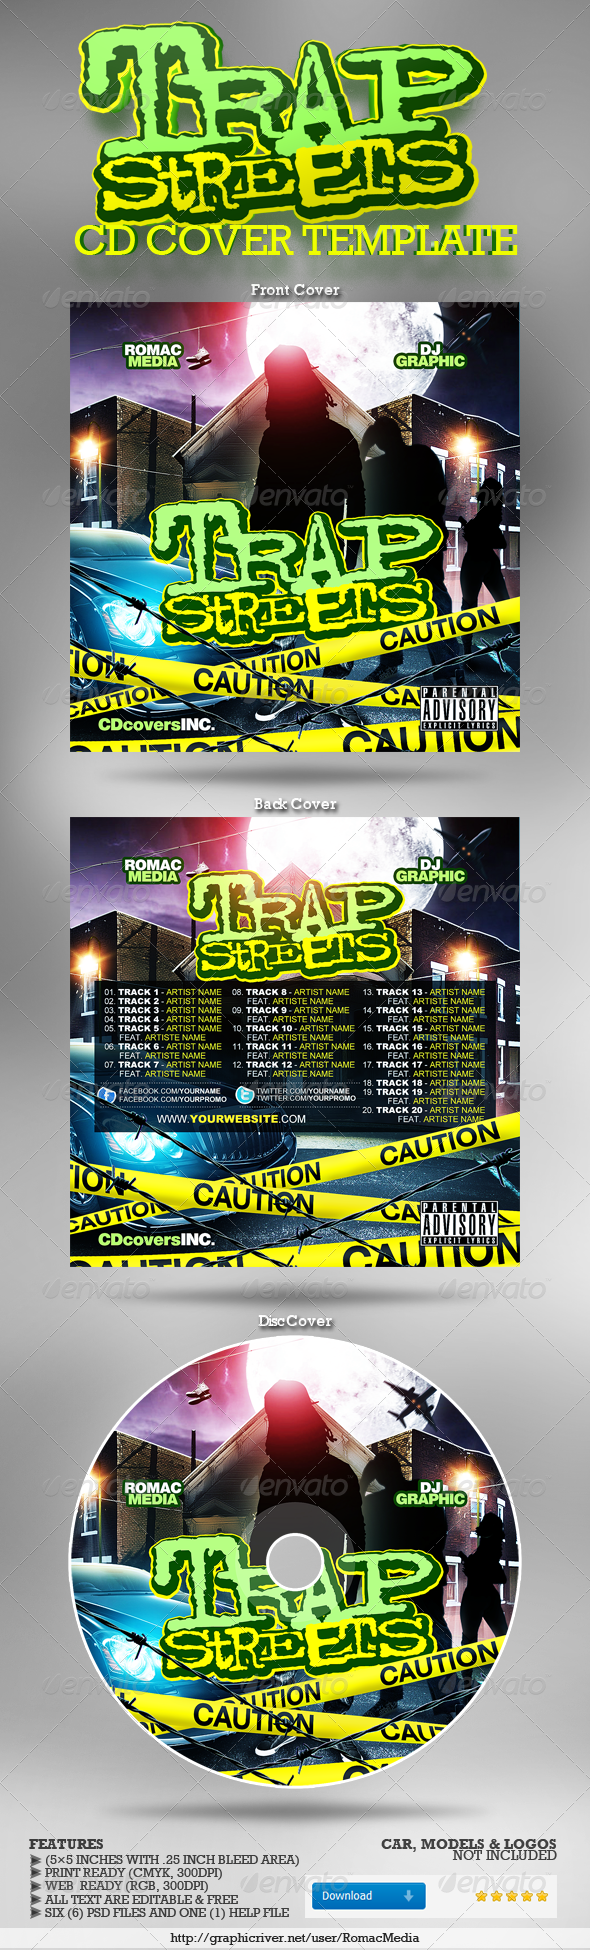 Trap Streets CD Cover - CD & DVD Artwork Print Templates